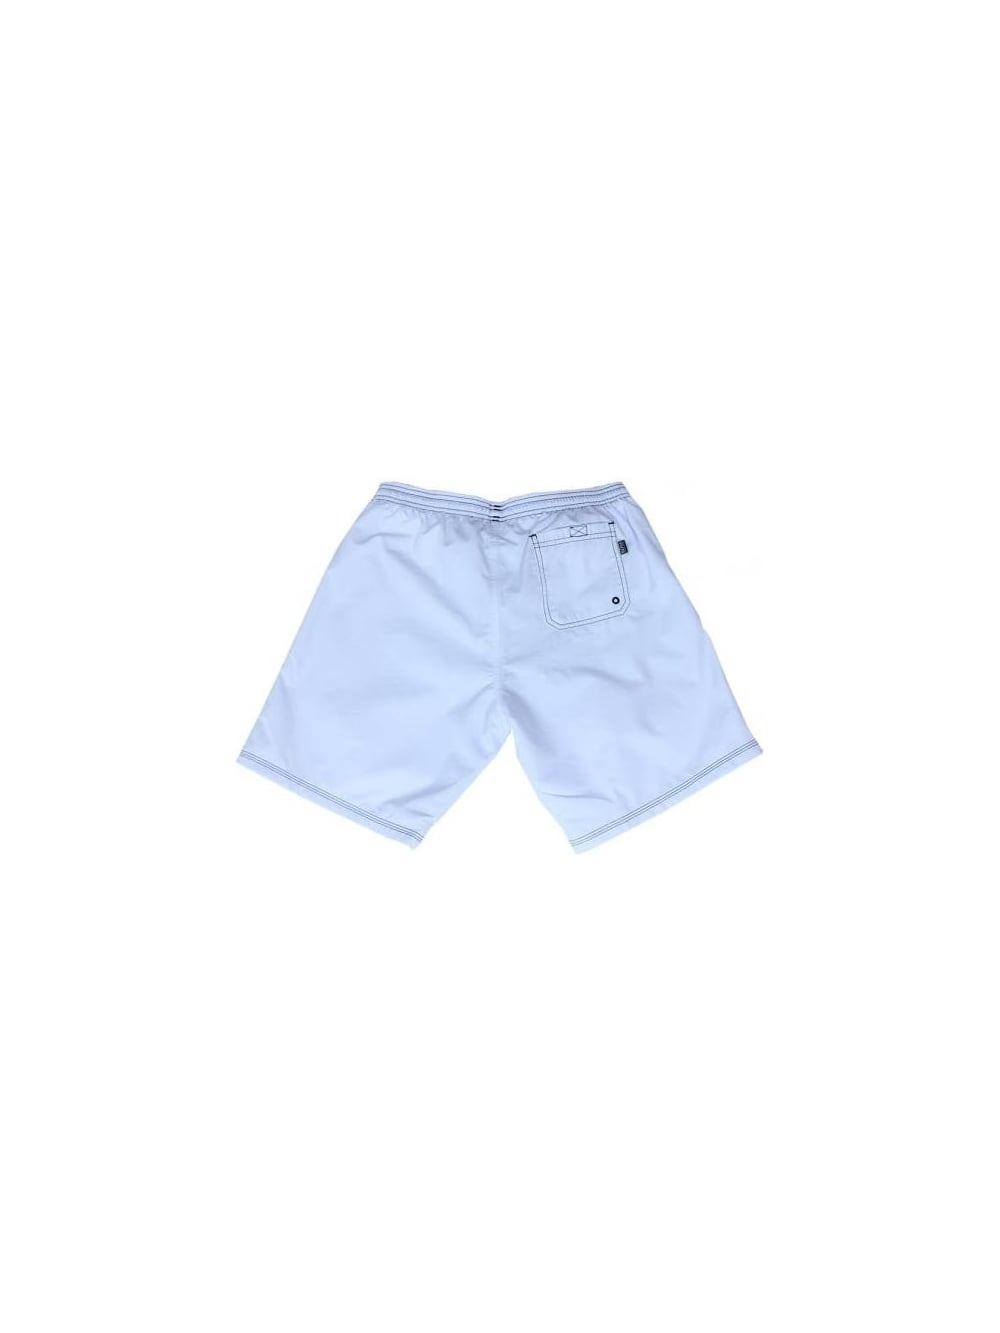 216ef4d4543ea Hugo Boss Black Killifish Swimming Shorts In White - Northern Threads